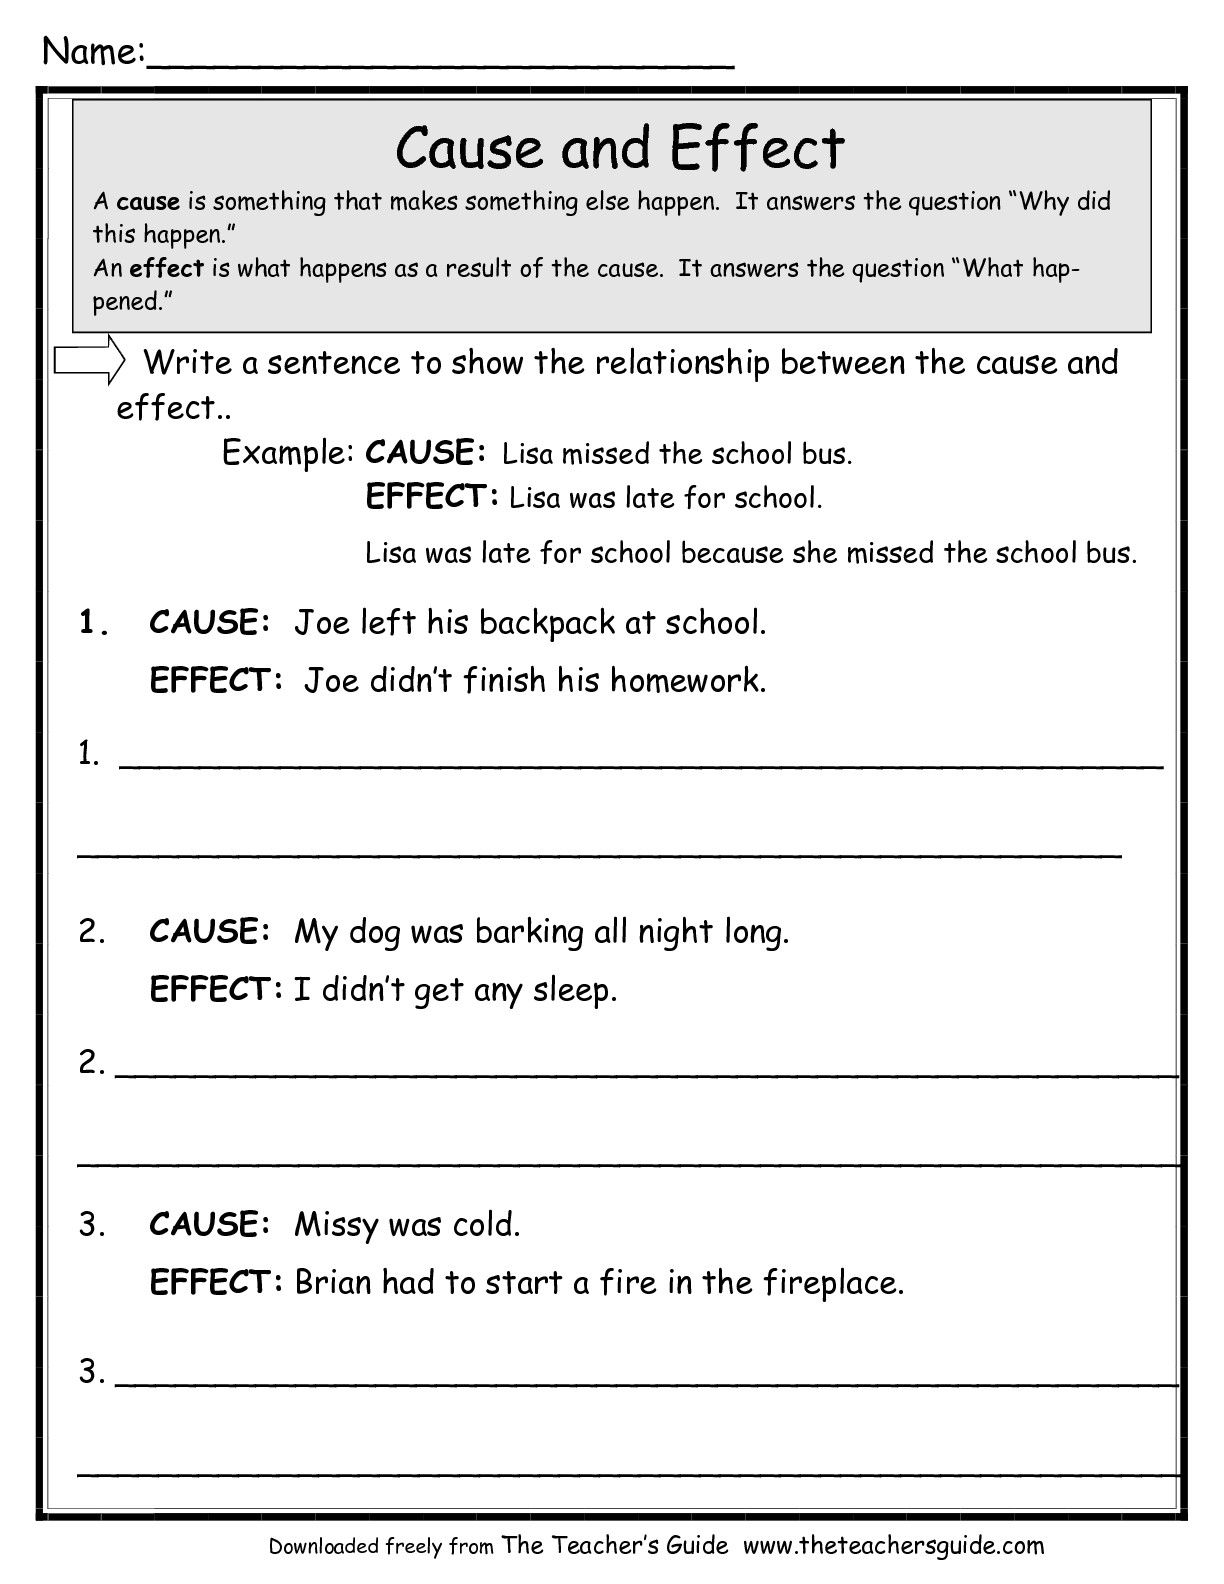 worksheets for various reading skills Language Arts – Cause and Effect Kindergarten Worksheets